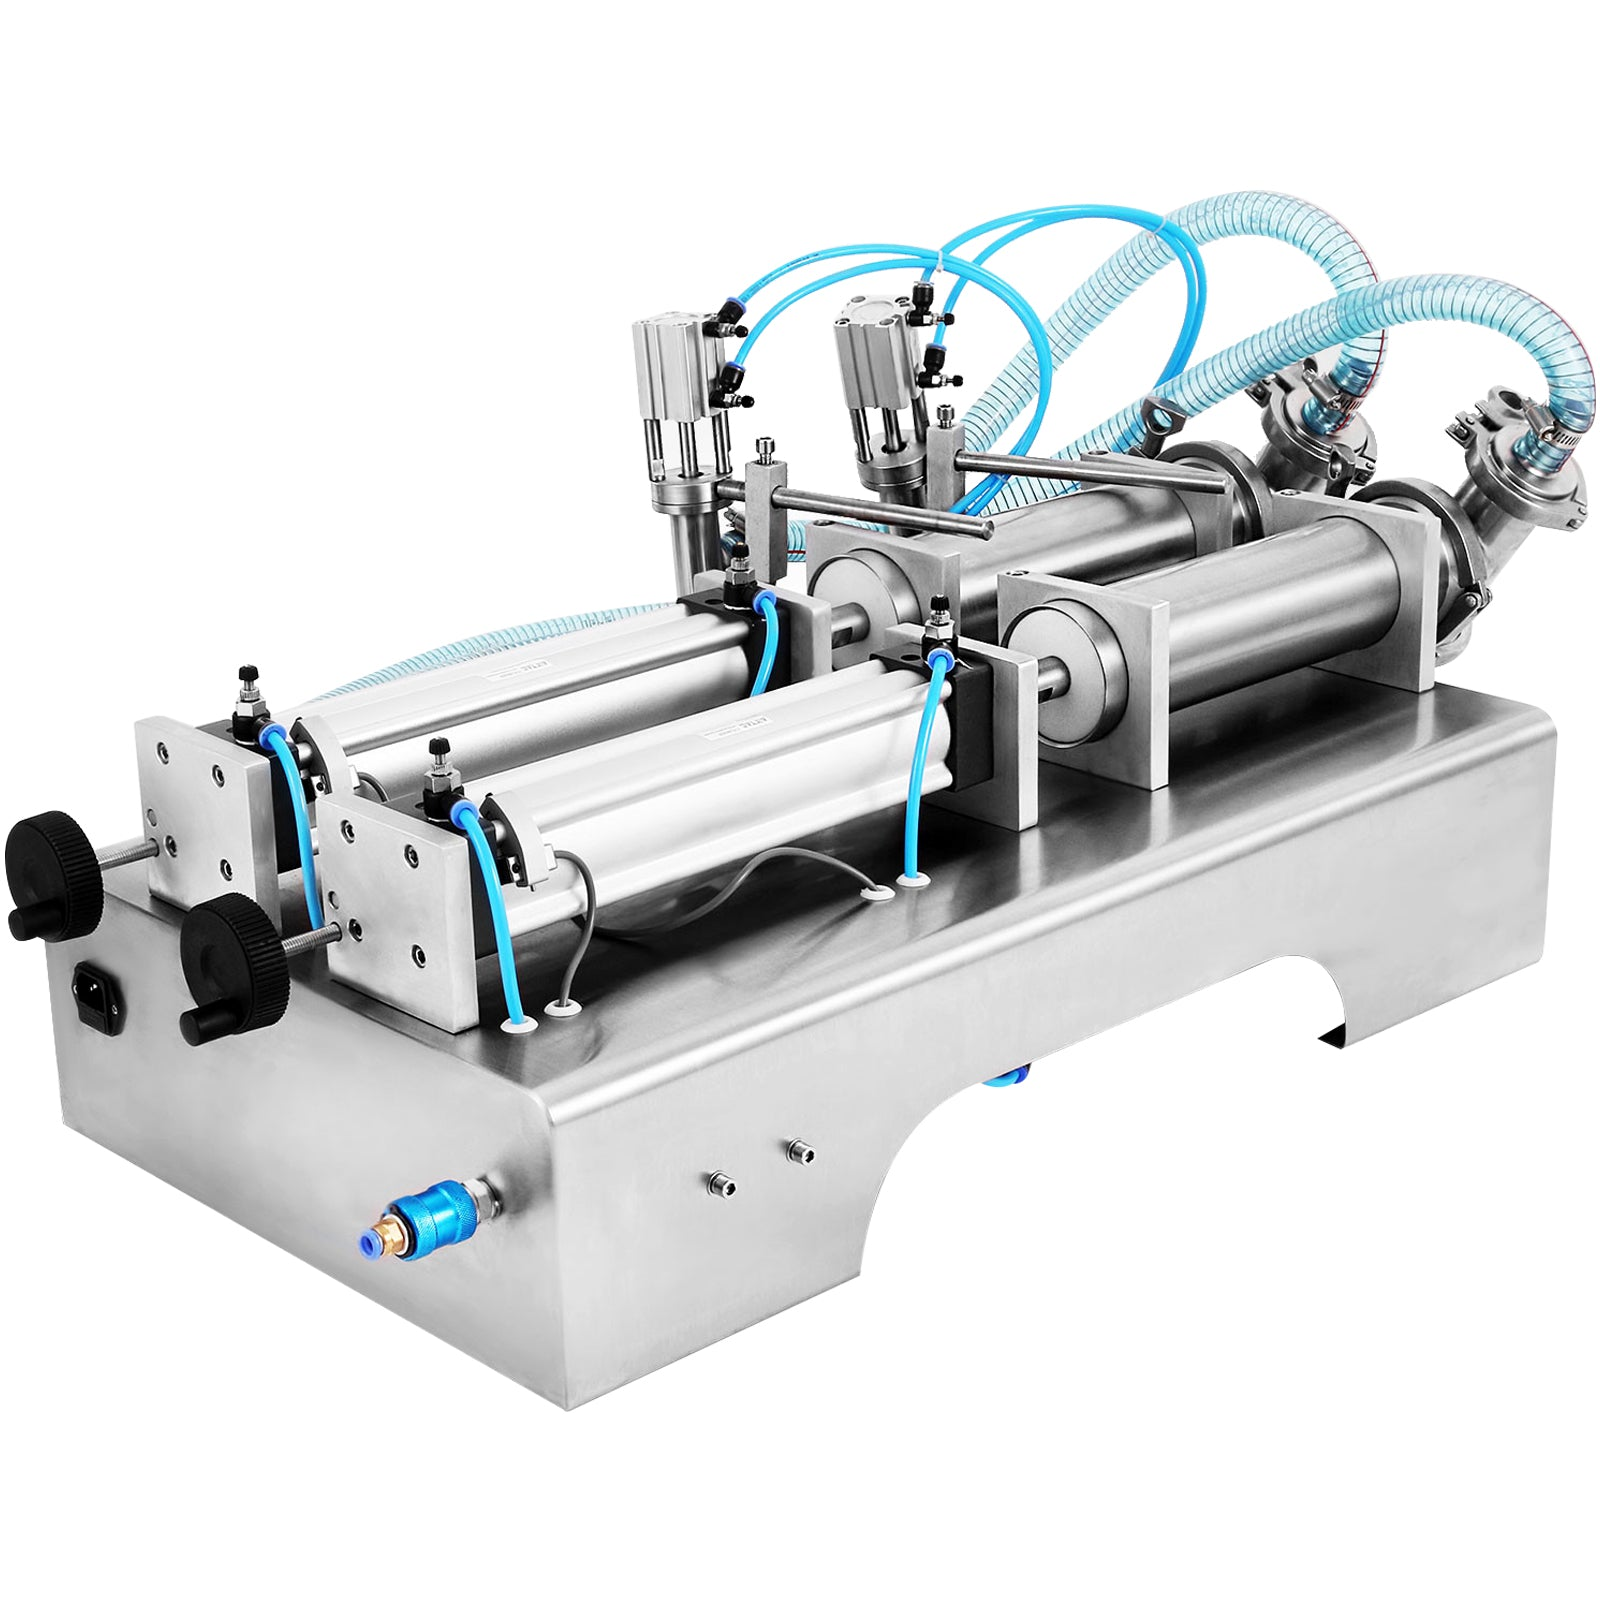 Two Heads Pneumatic Liquid Filling Machine 100-1000ml Shampoo Pressure Sealing